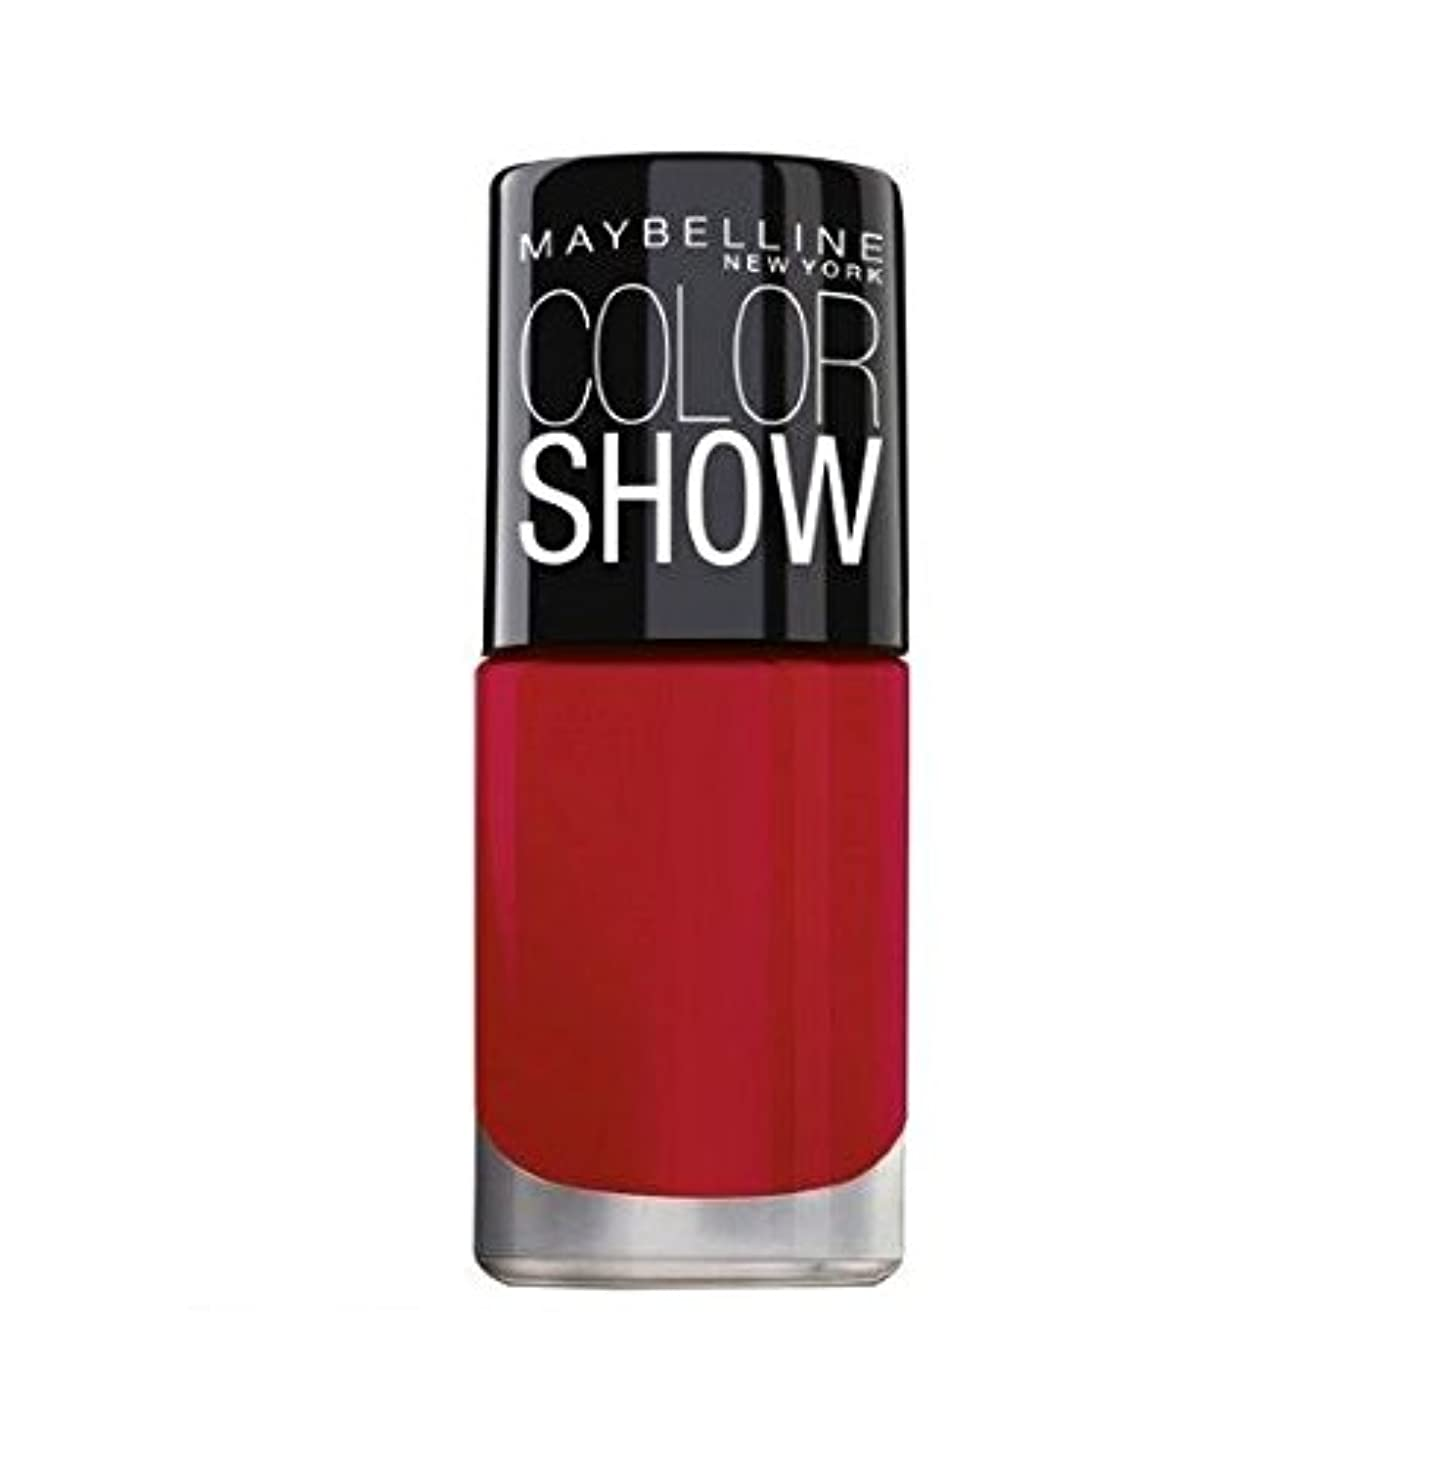 合併症議題珍味Maybelline Color Show Bright Sparks, Power of Red 708, 6ml